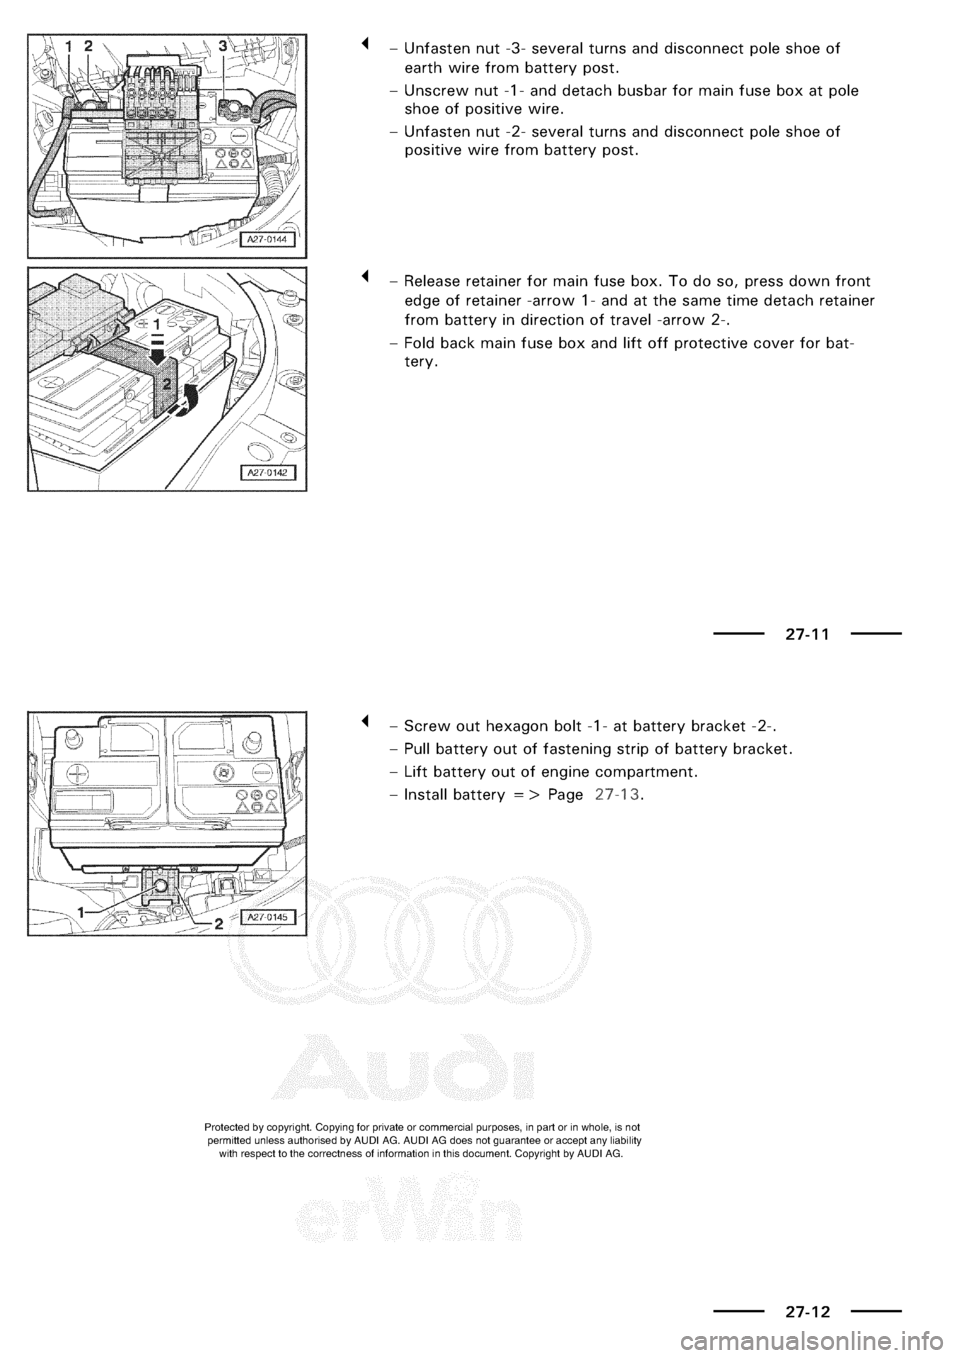 AUDI A3 1997 8L / 1.G Electrical System User Guide